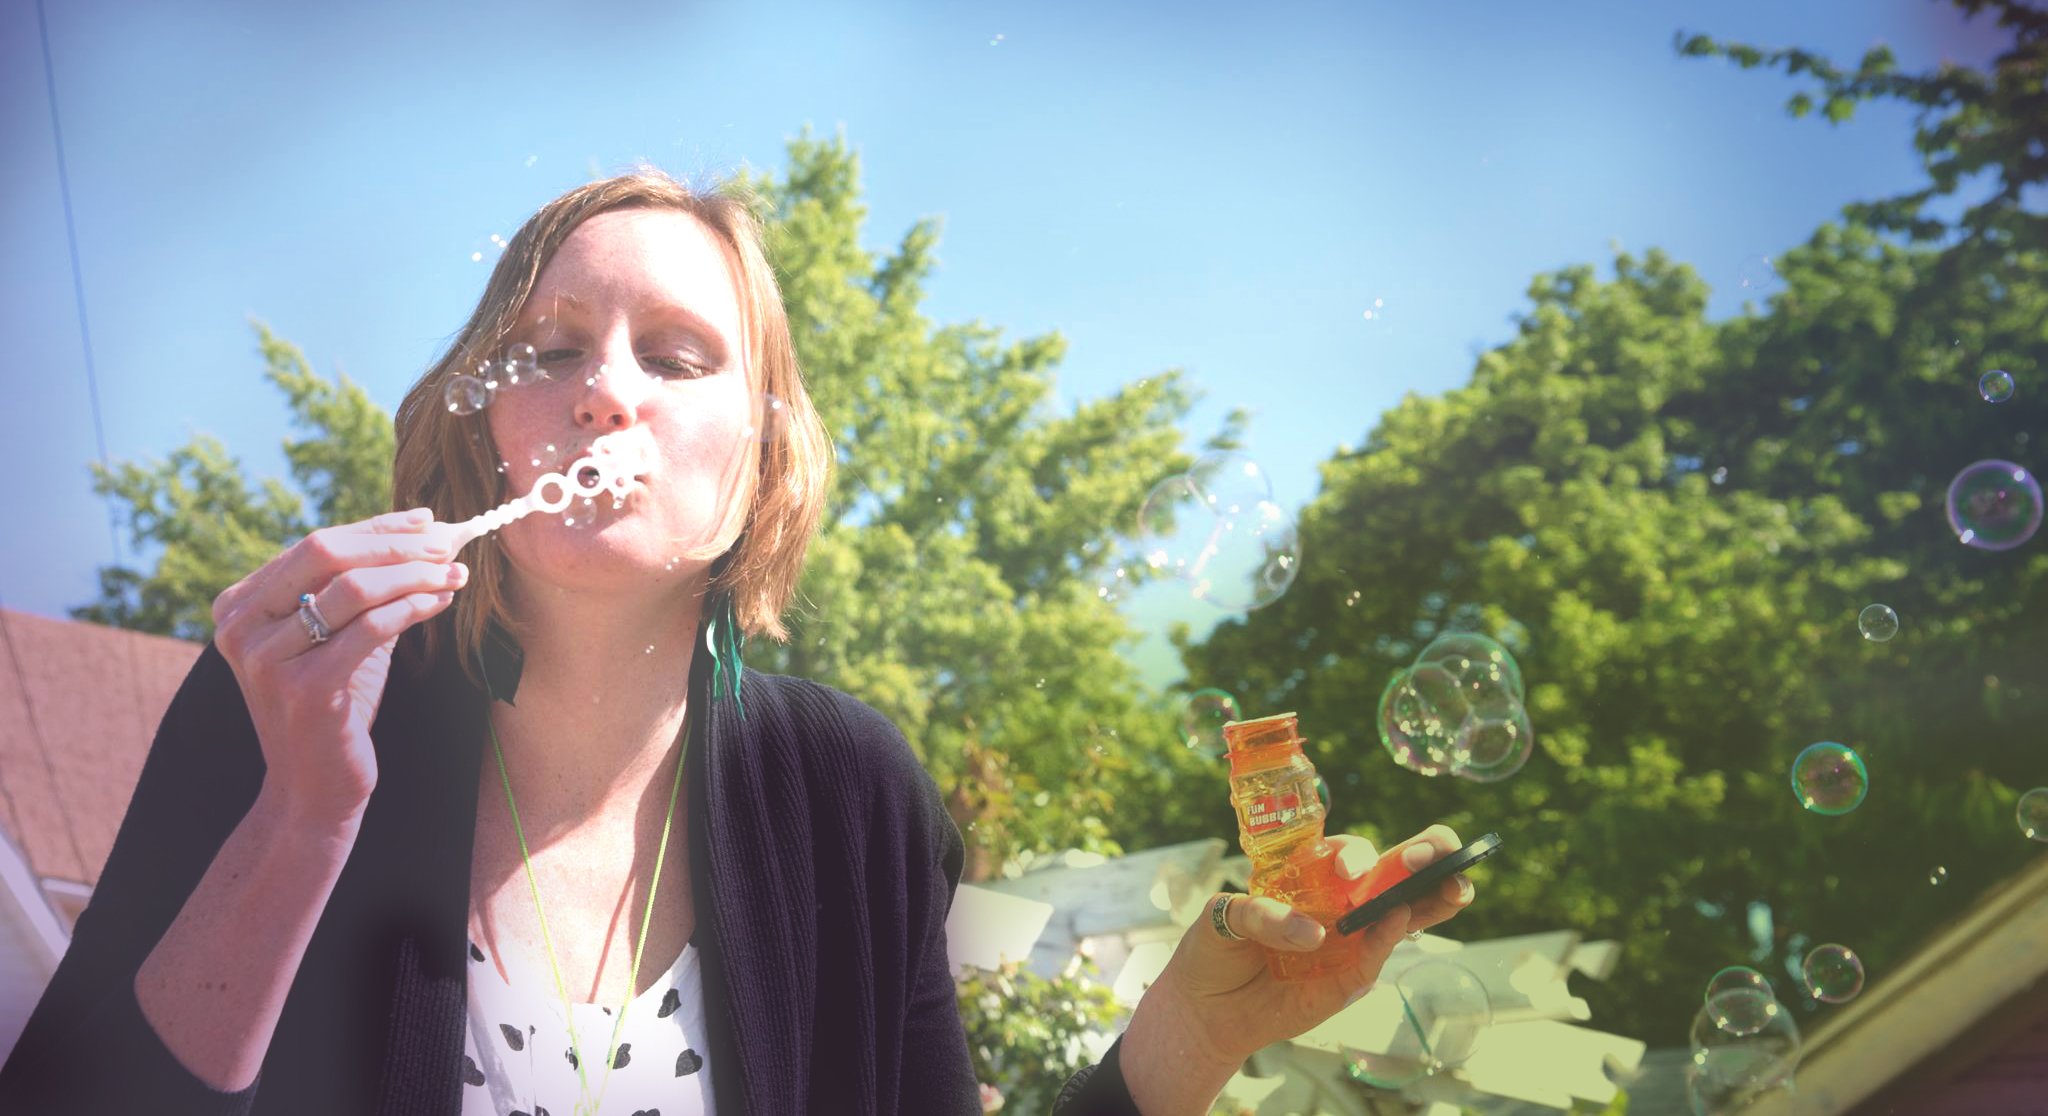 Blowing bubbles for B-roll for my sister the videographer. One of many odd jobs I've been lucky enough to do.